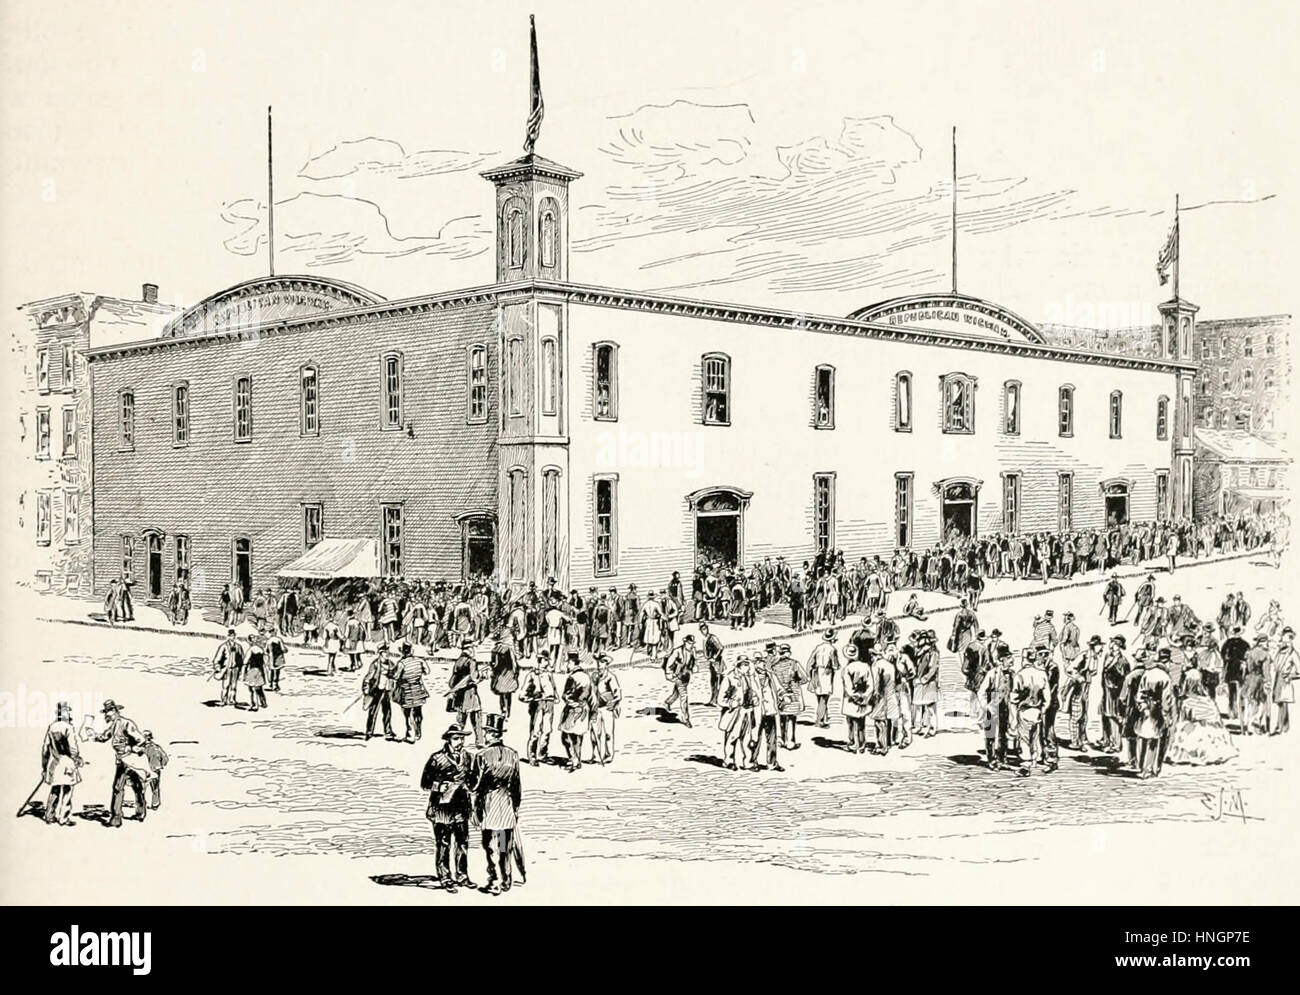 The Wigwam at Chicago, where Abraham Lincoln was nominated for President, 1860 - Stock Image